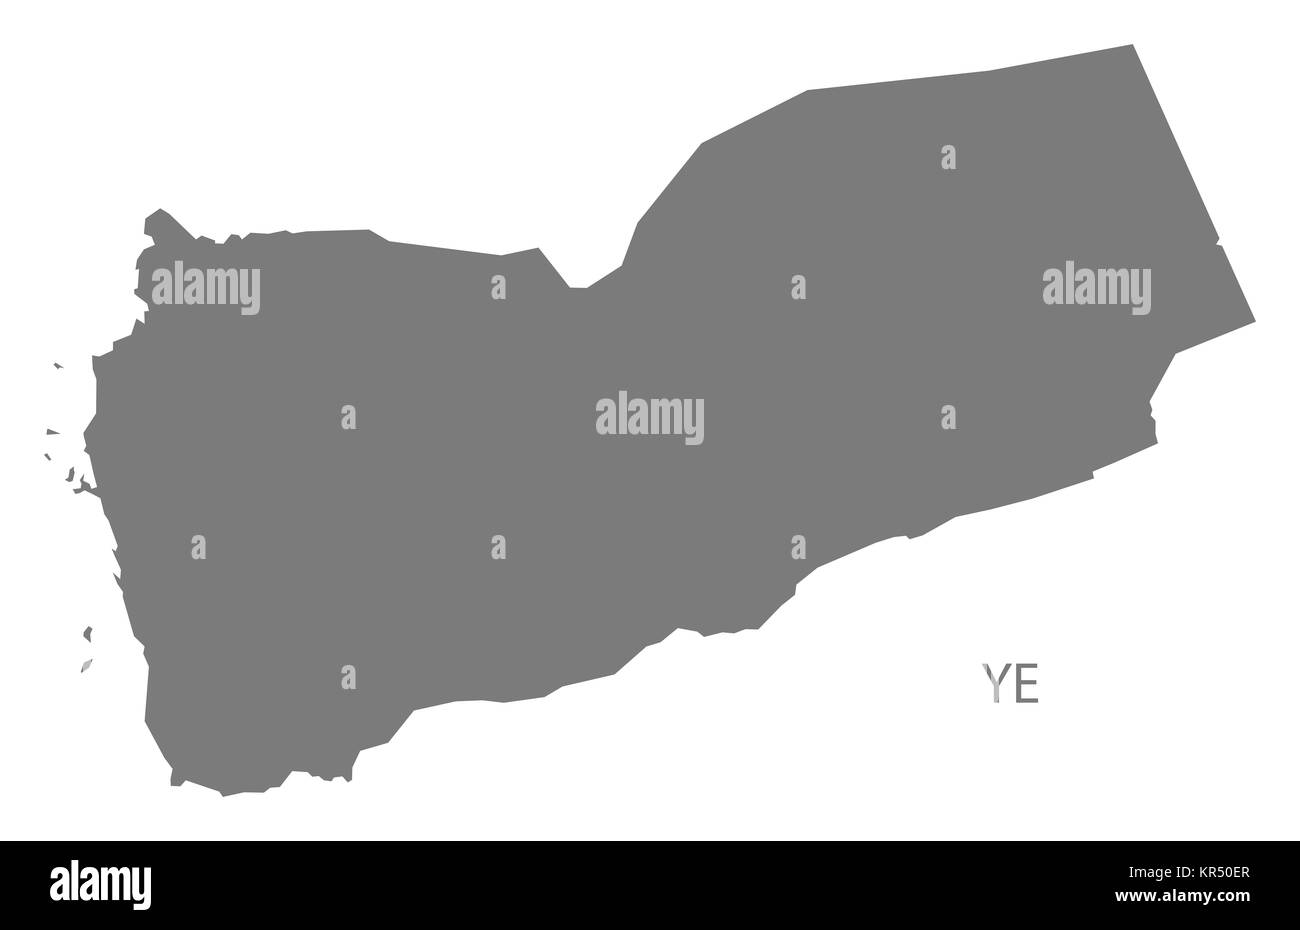 Yemen Map grey Stock Photo